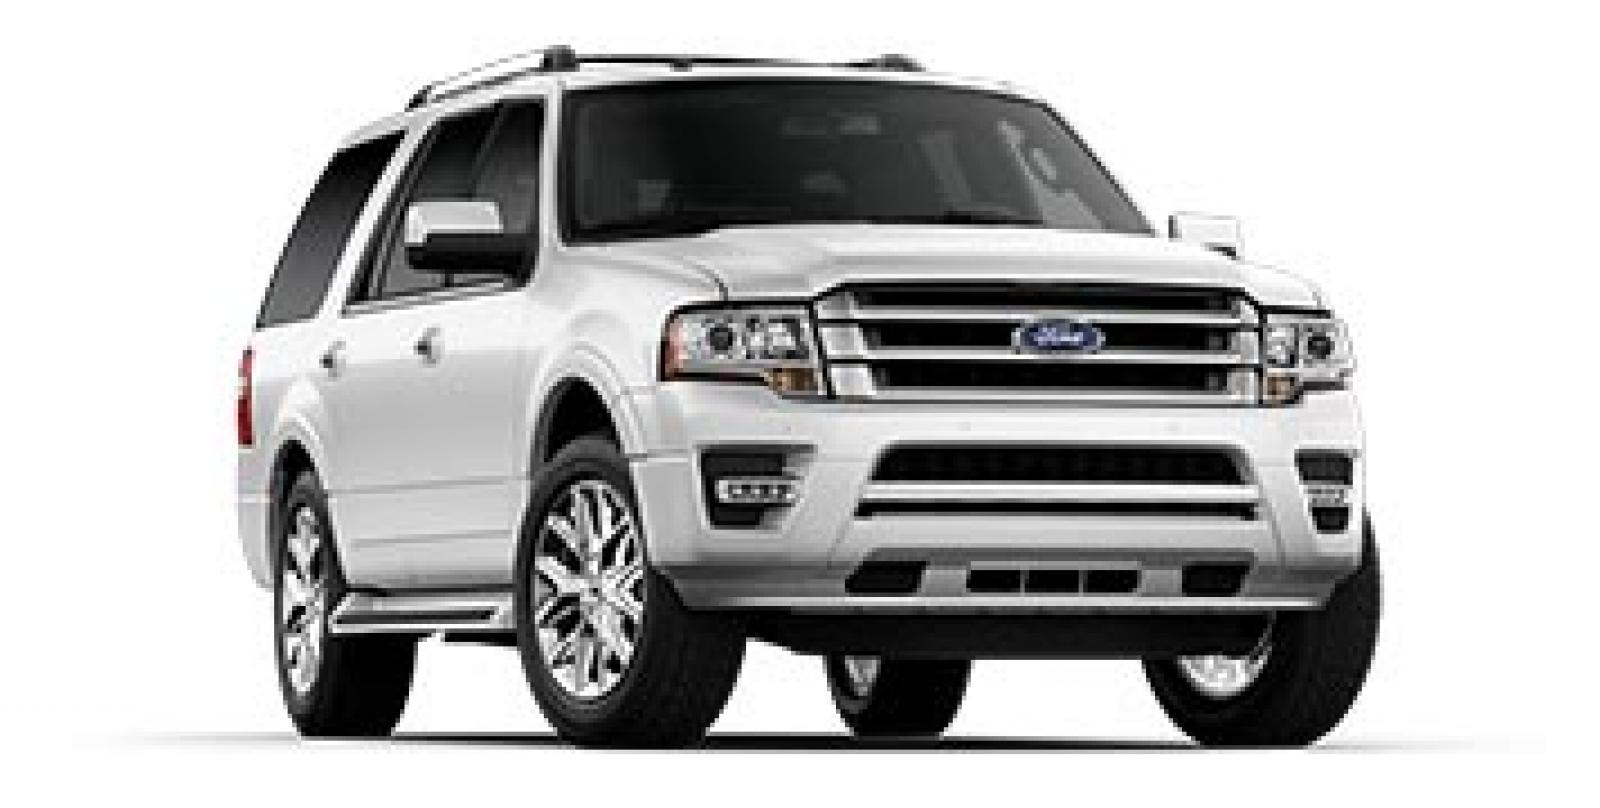 2015 ford expedition information and photos zombiedrive. Black Bedroom Furniture Sets. Home Design Ideas